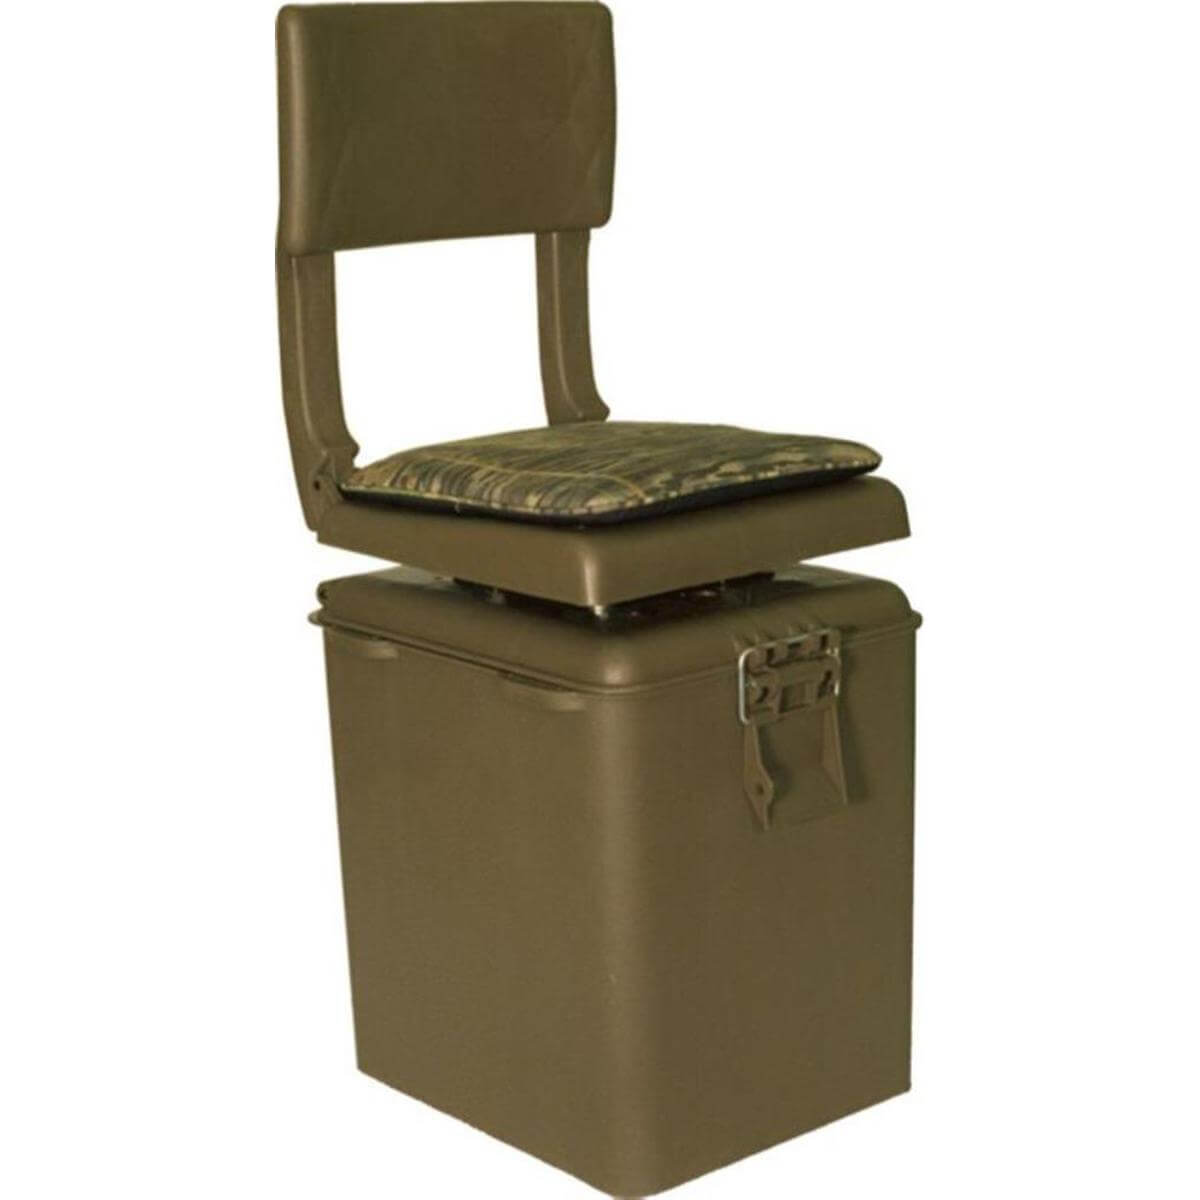 duck blind chair how to make a folding cover hunting chairs stools for the field marsh best seller